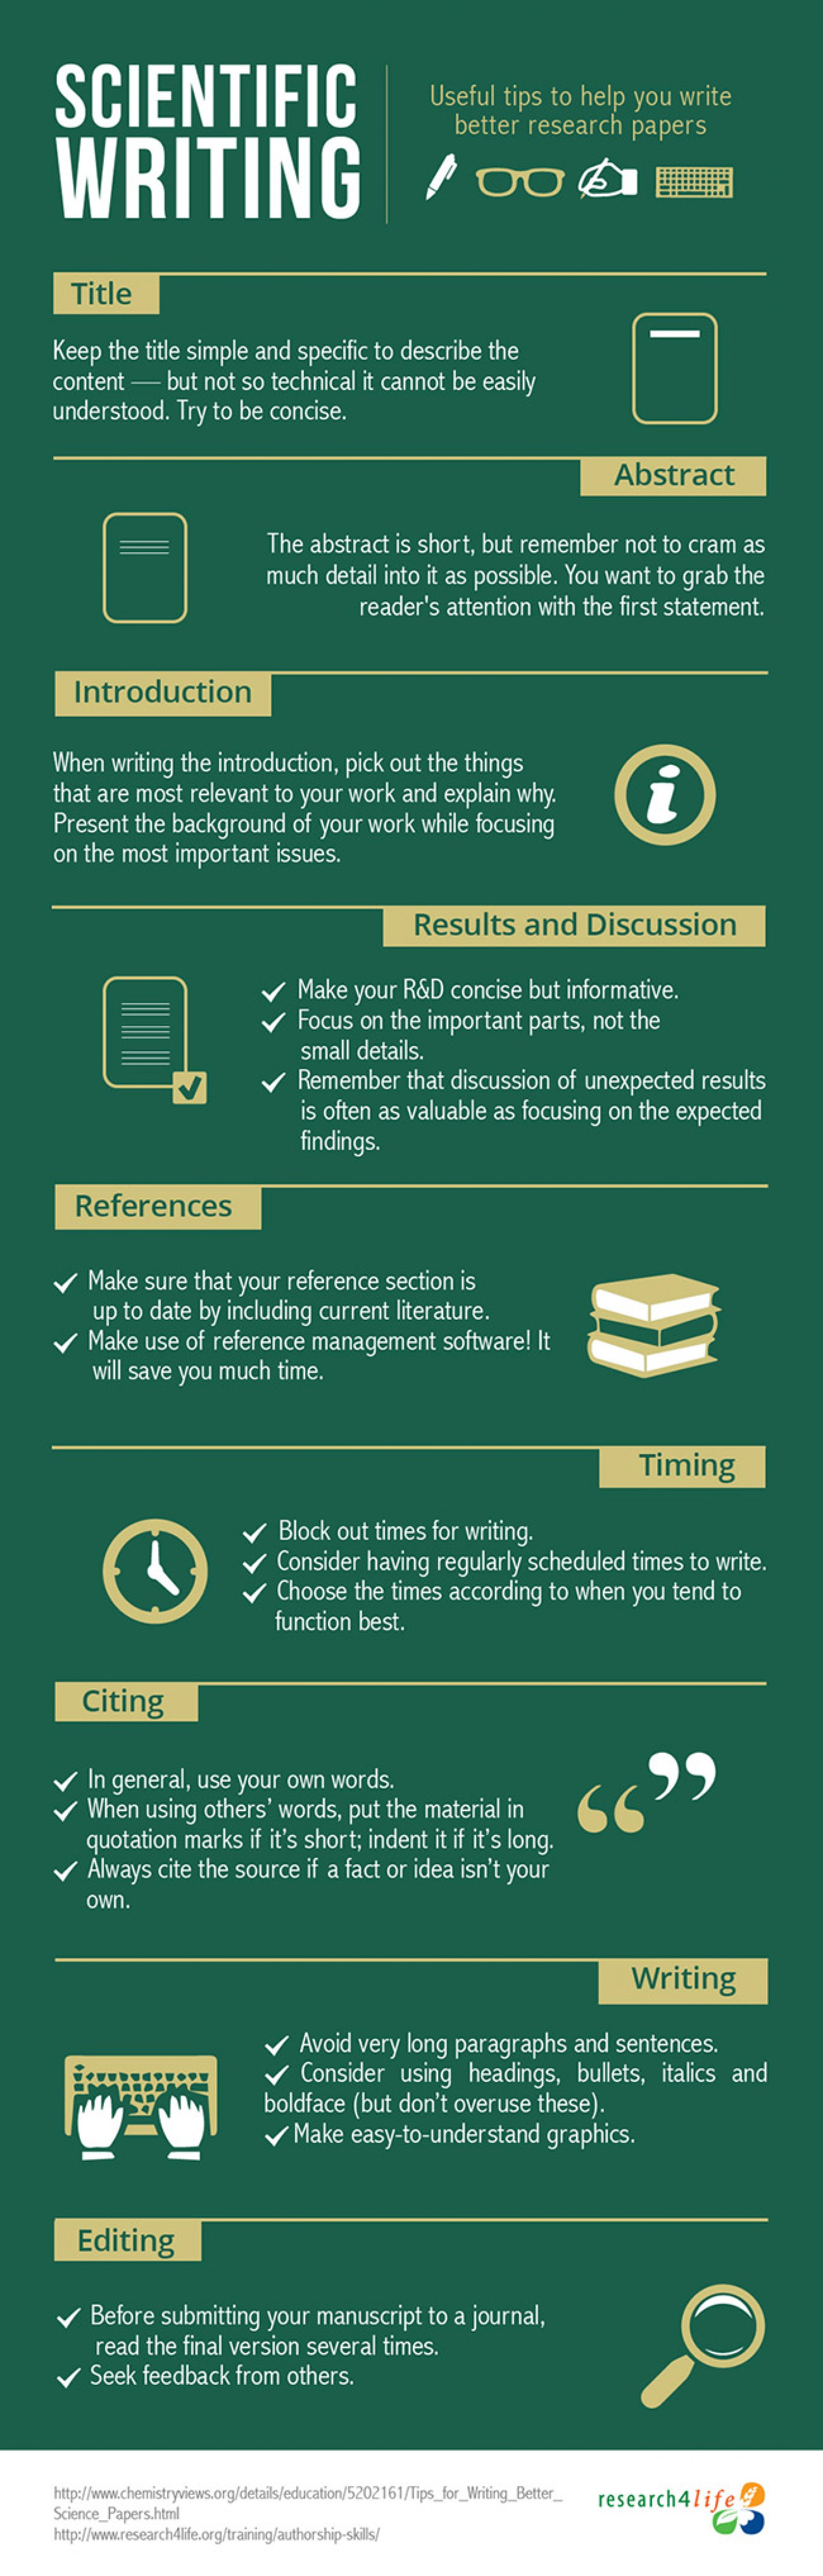 018 How To Write Research Paper Fast And Easy Infographic Science Writing Singular A 1920